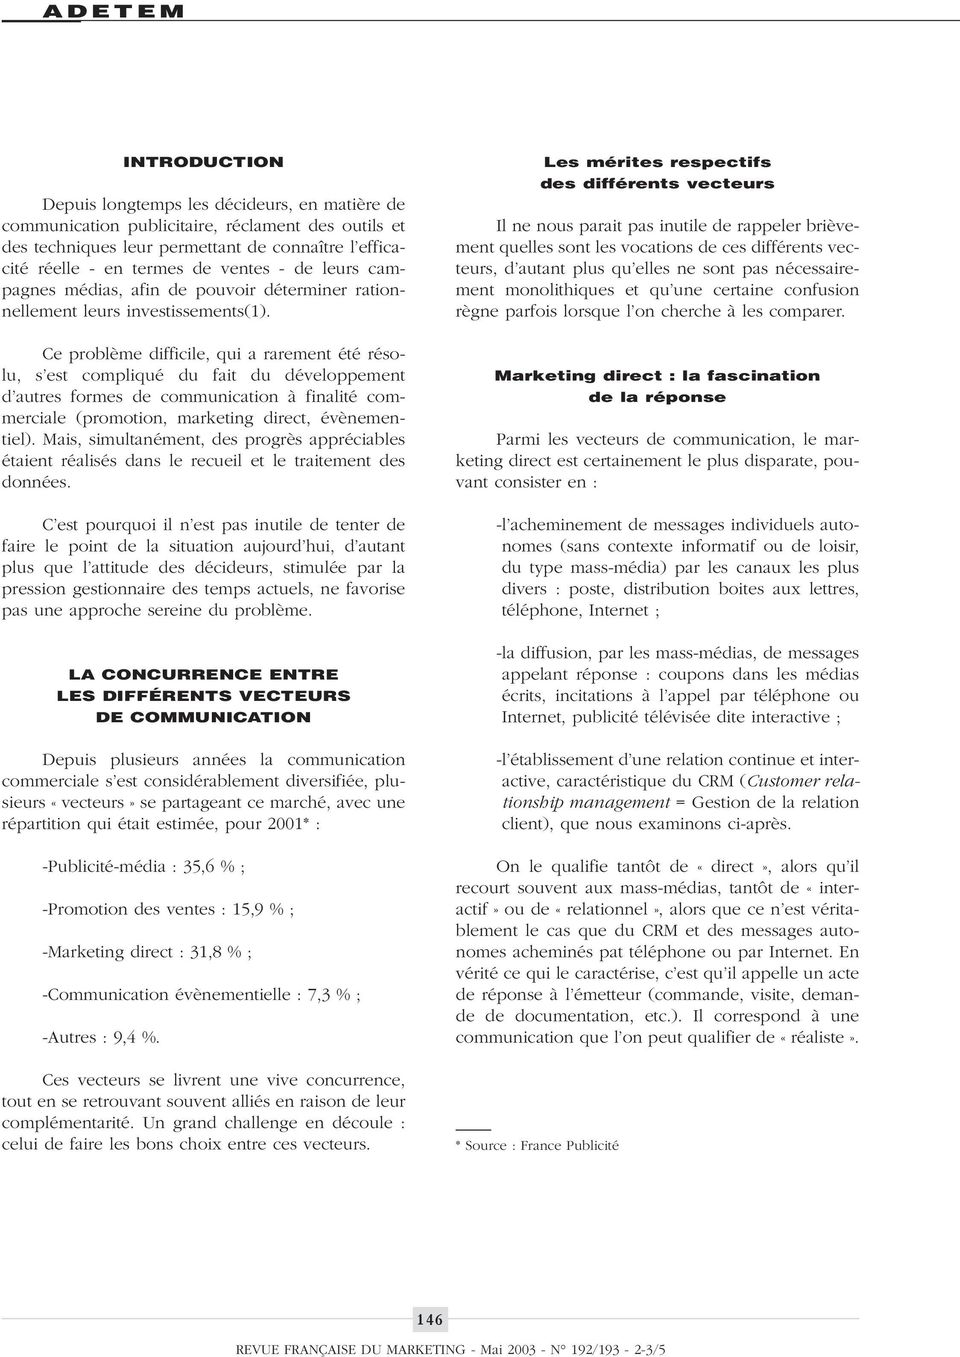 Ce problème difficile, qui a rarement été résolu, s est compliqué du fait du développement d autres formes de communication à finalité commerciale (promotion, marketing direct, évènementiel).